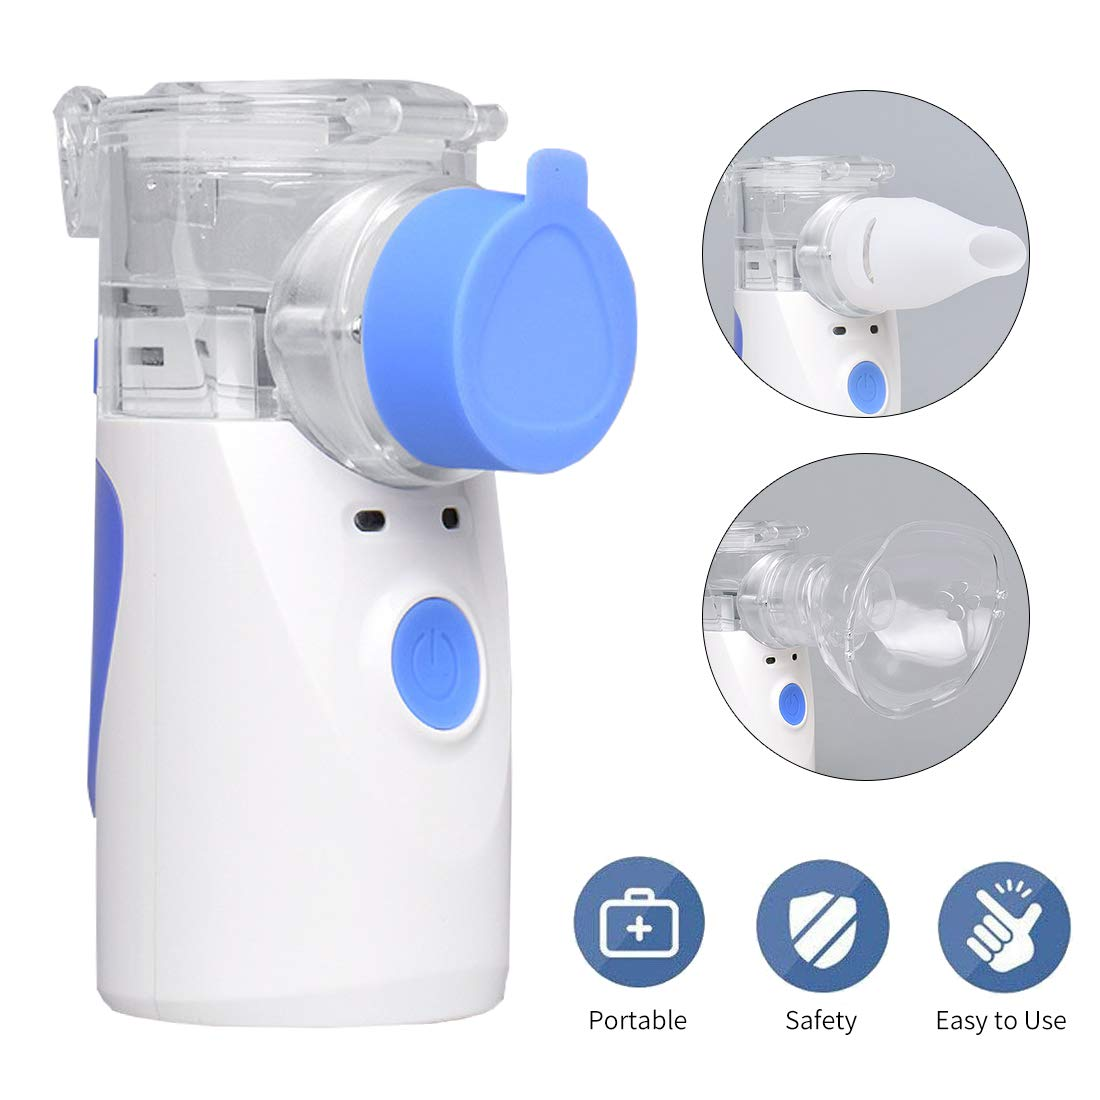 Handheld Inhaler, Portable Mini Vaporizer Cool Mist Compressor Humidifier for Adults & Kids, Steam Inhaler for Travel and Home Daily Use (Blue)-Battery Type by CLORIS